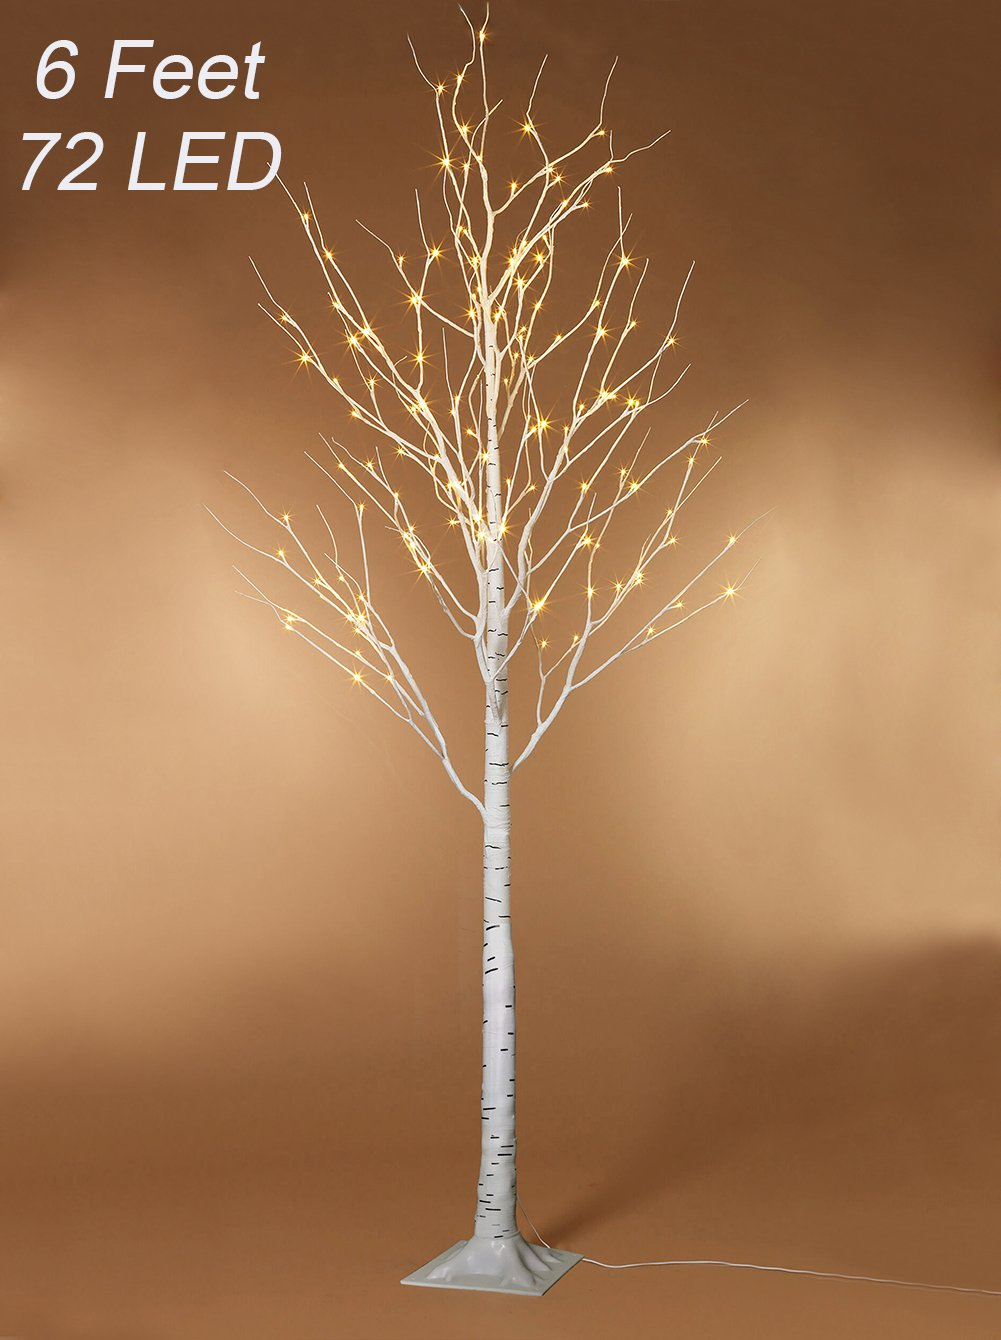 Twinkle Star Lighted Birch Tree 6 Feet 72 Led For Home Wedding